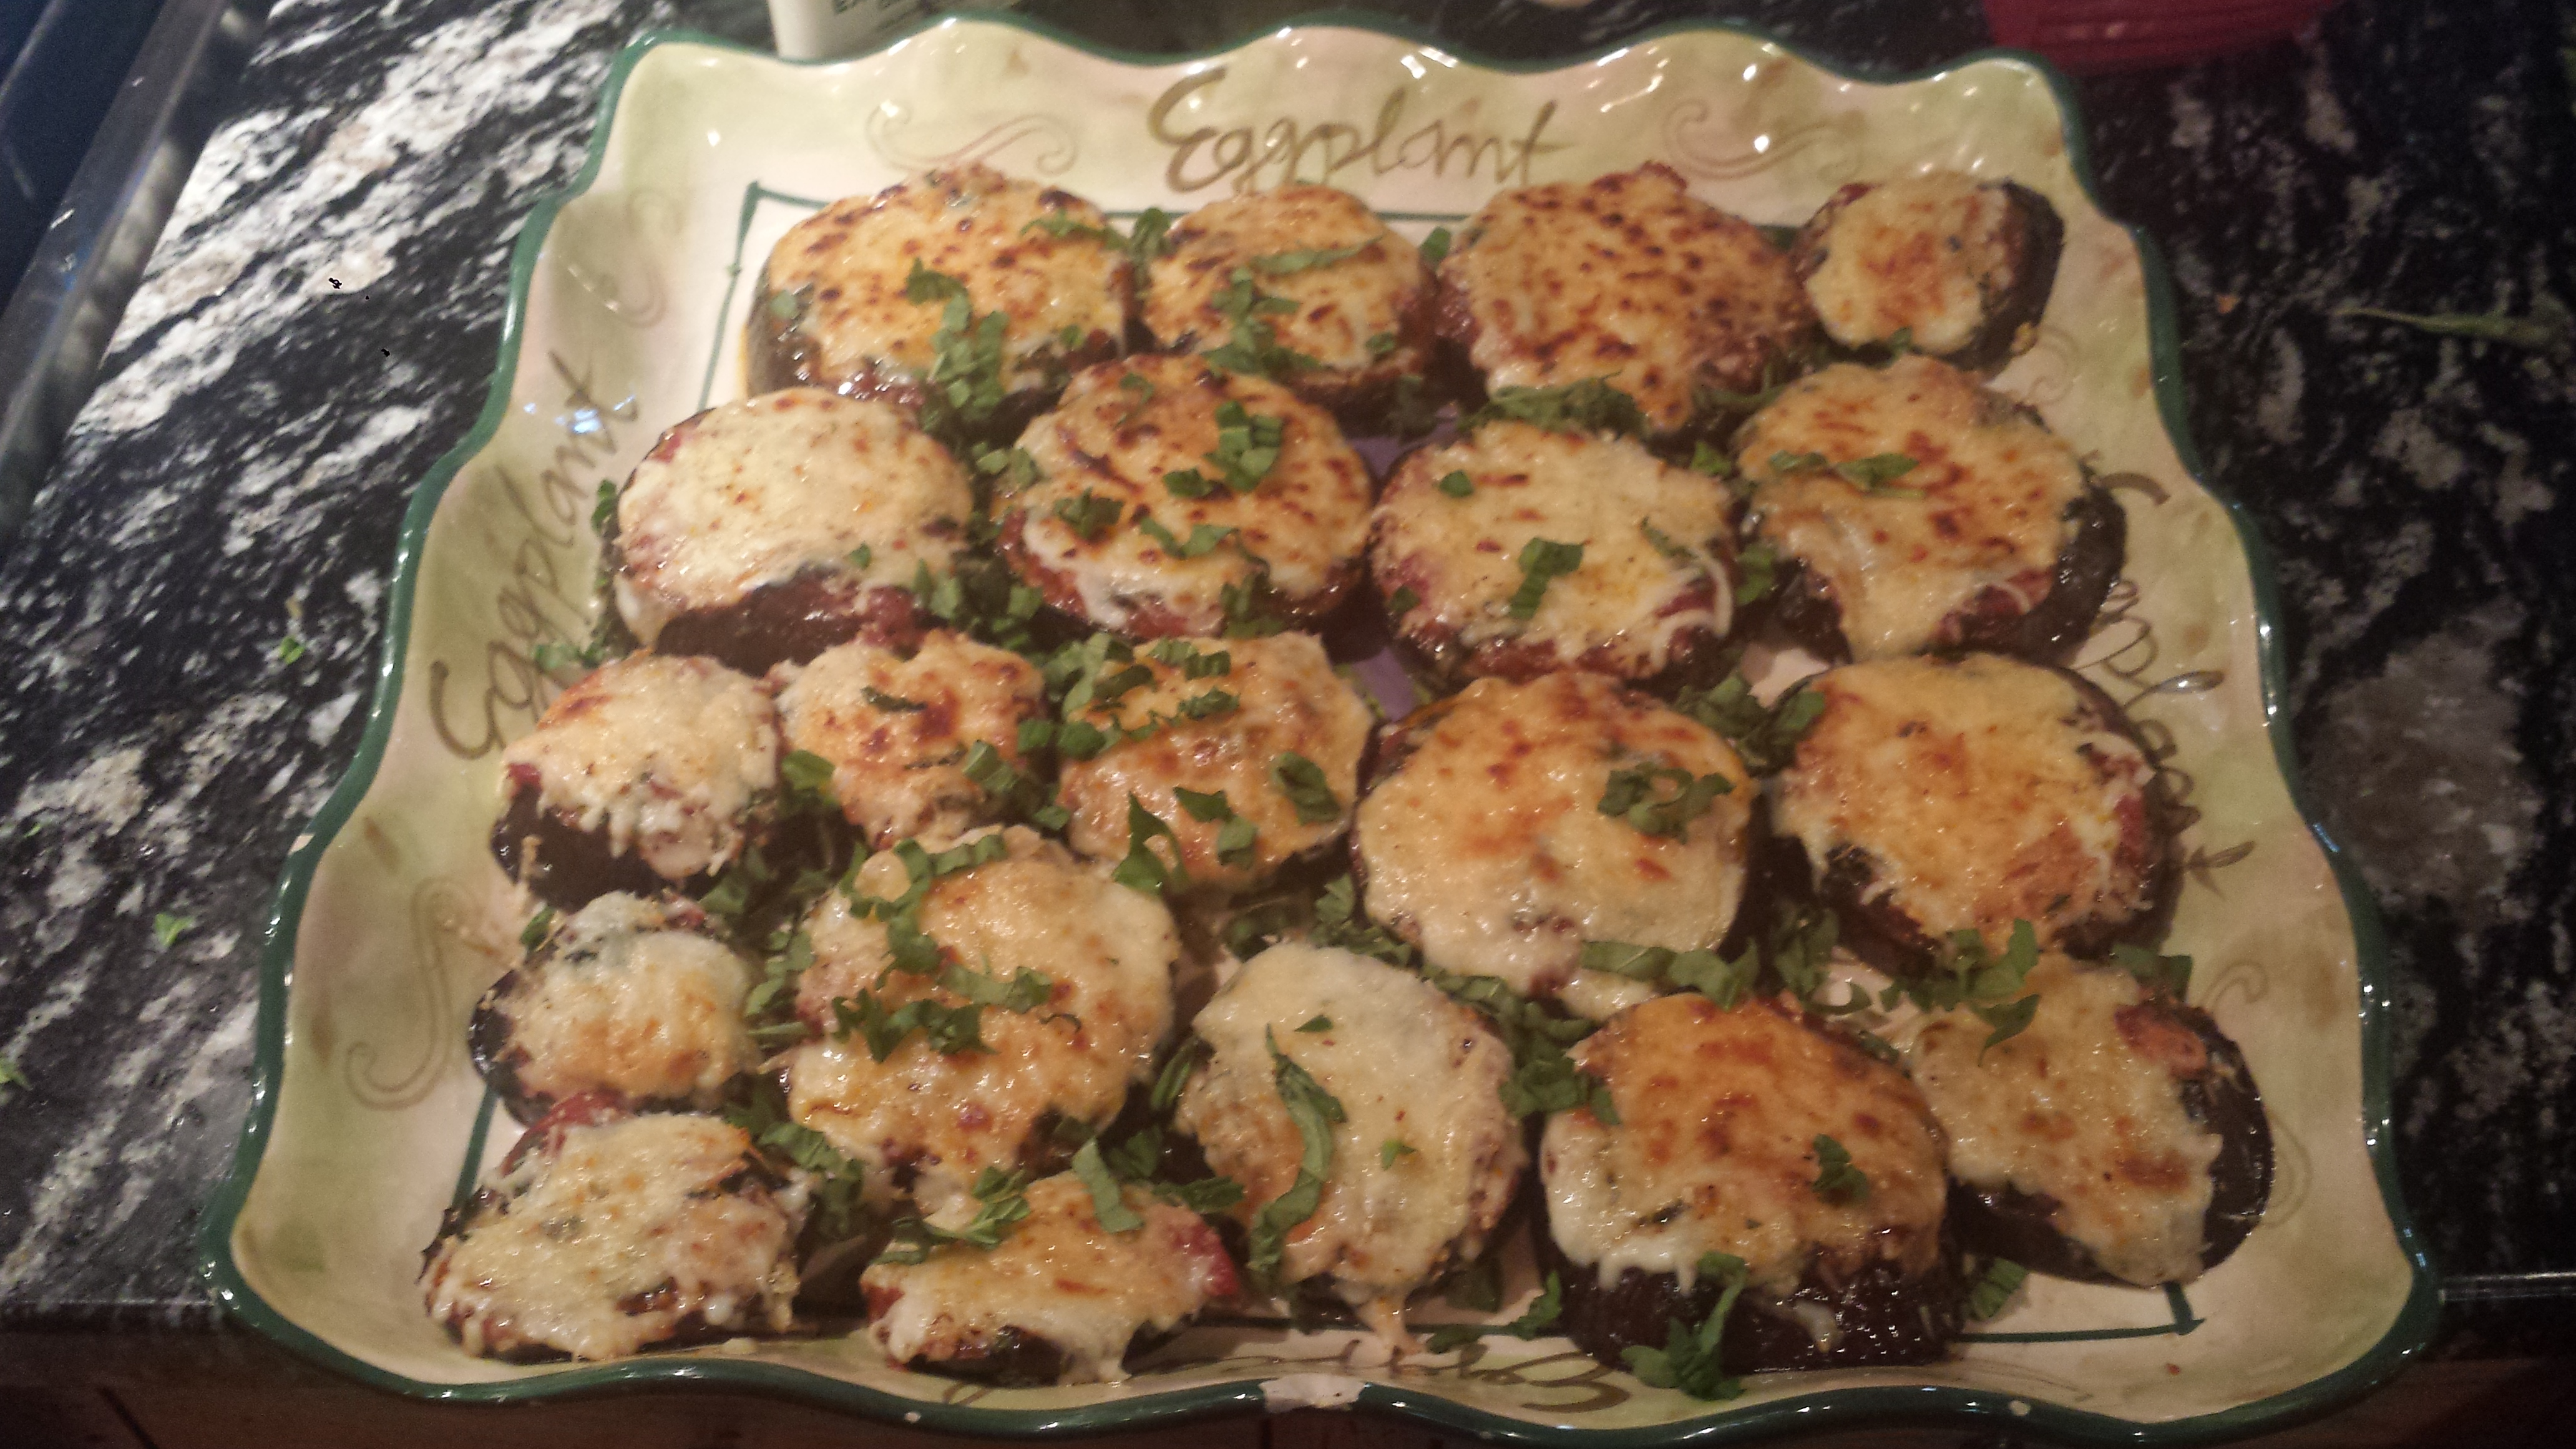 Mini eggplant parmesan goodmotherdiet raw eggplant can absorb an incredible amount of oil which adds unnecessary calories and fat eggplant is naturally low fat and low carb forumfinder Images